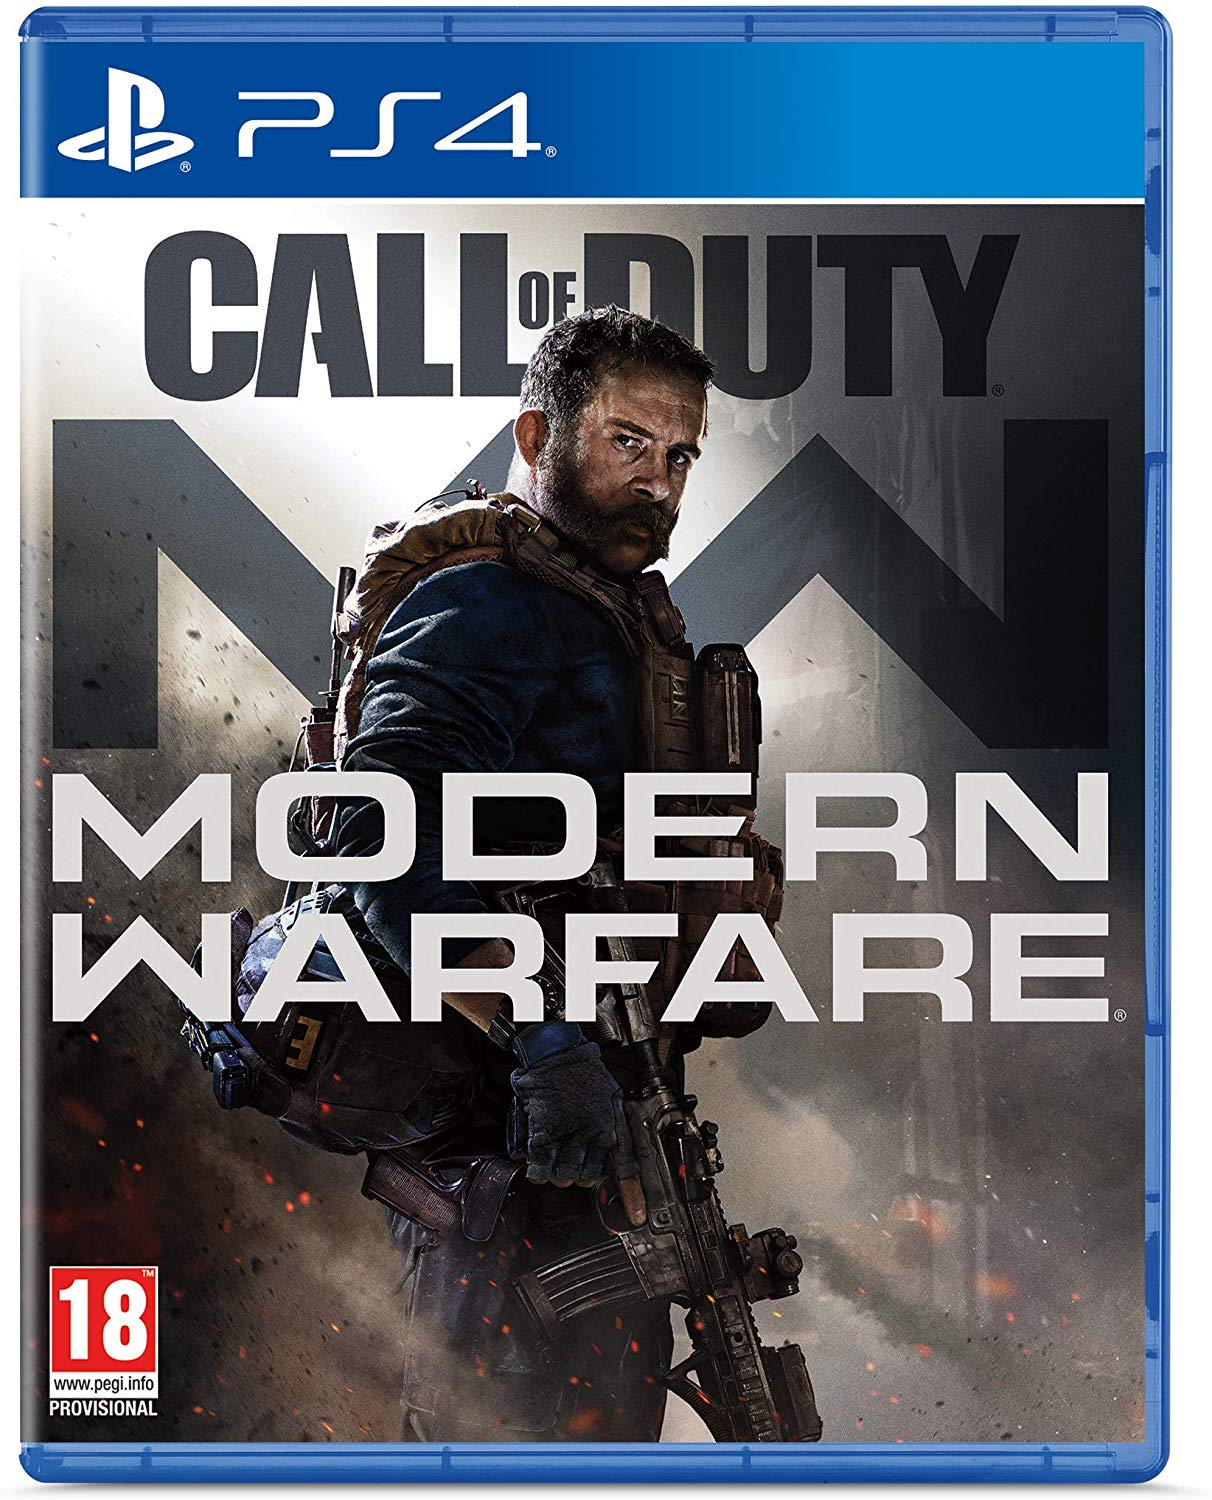 Call of Duty Modern Warfare (2019)